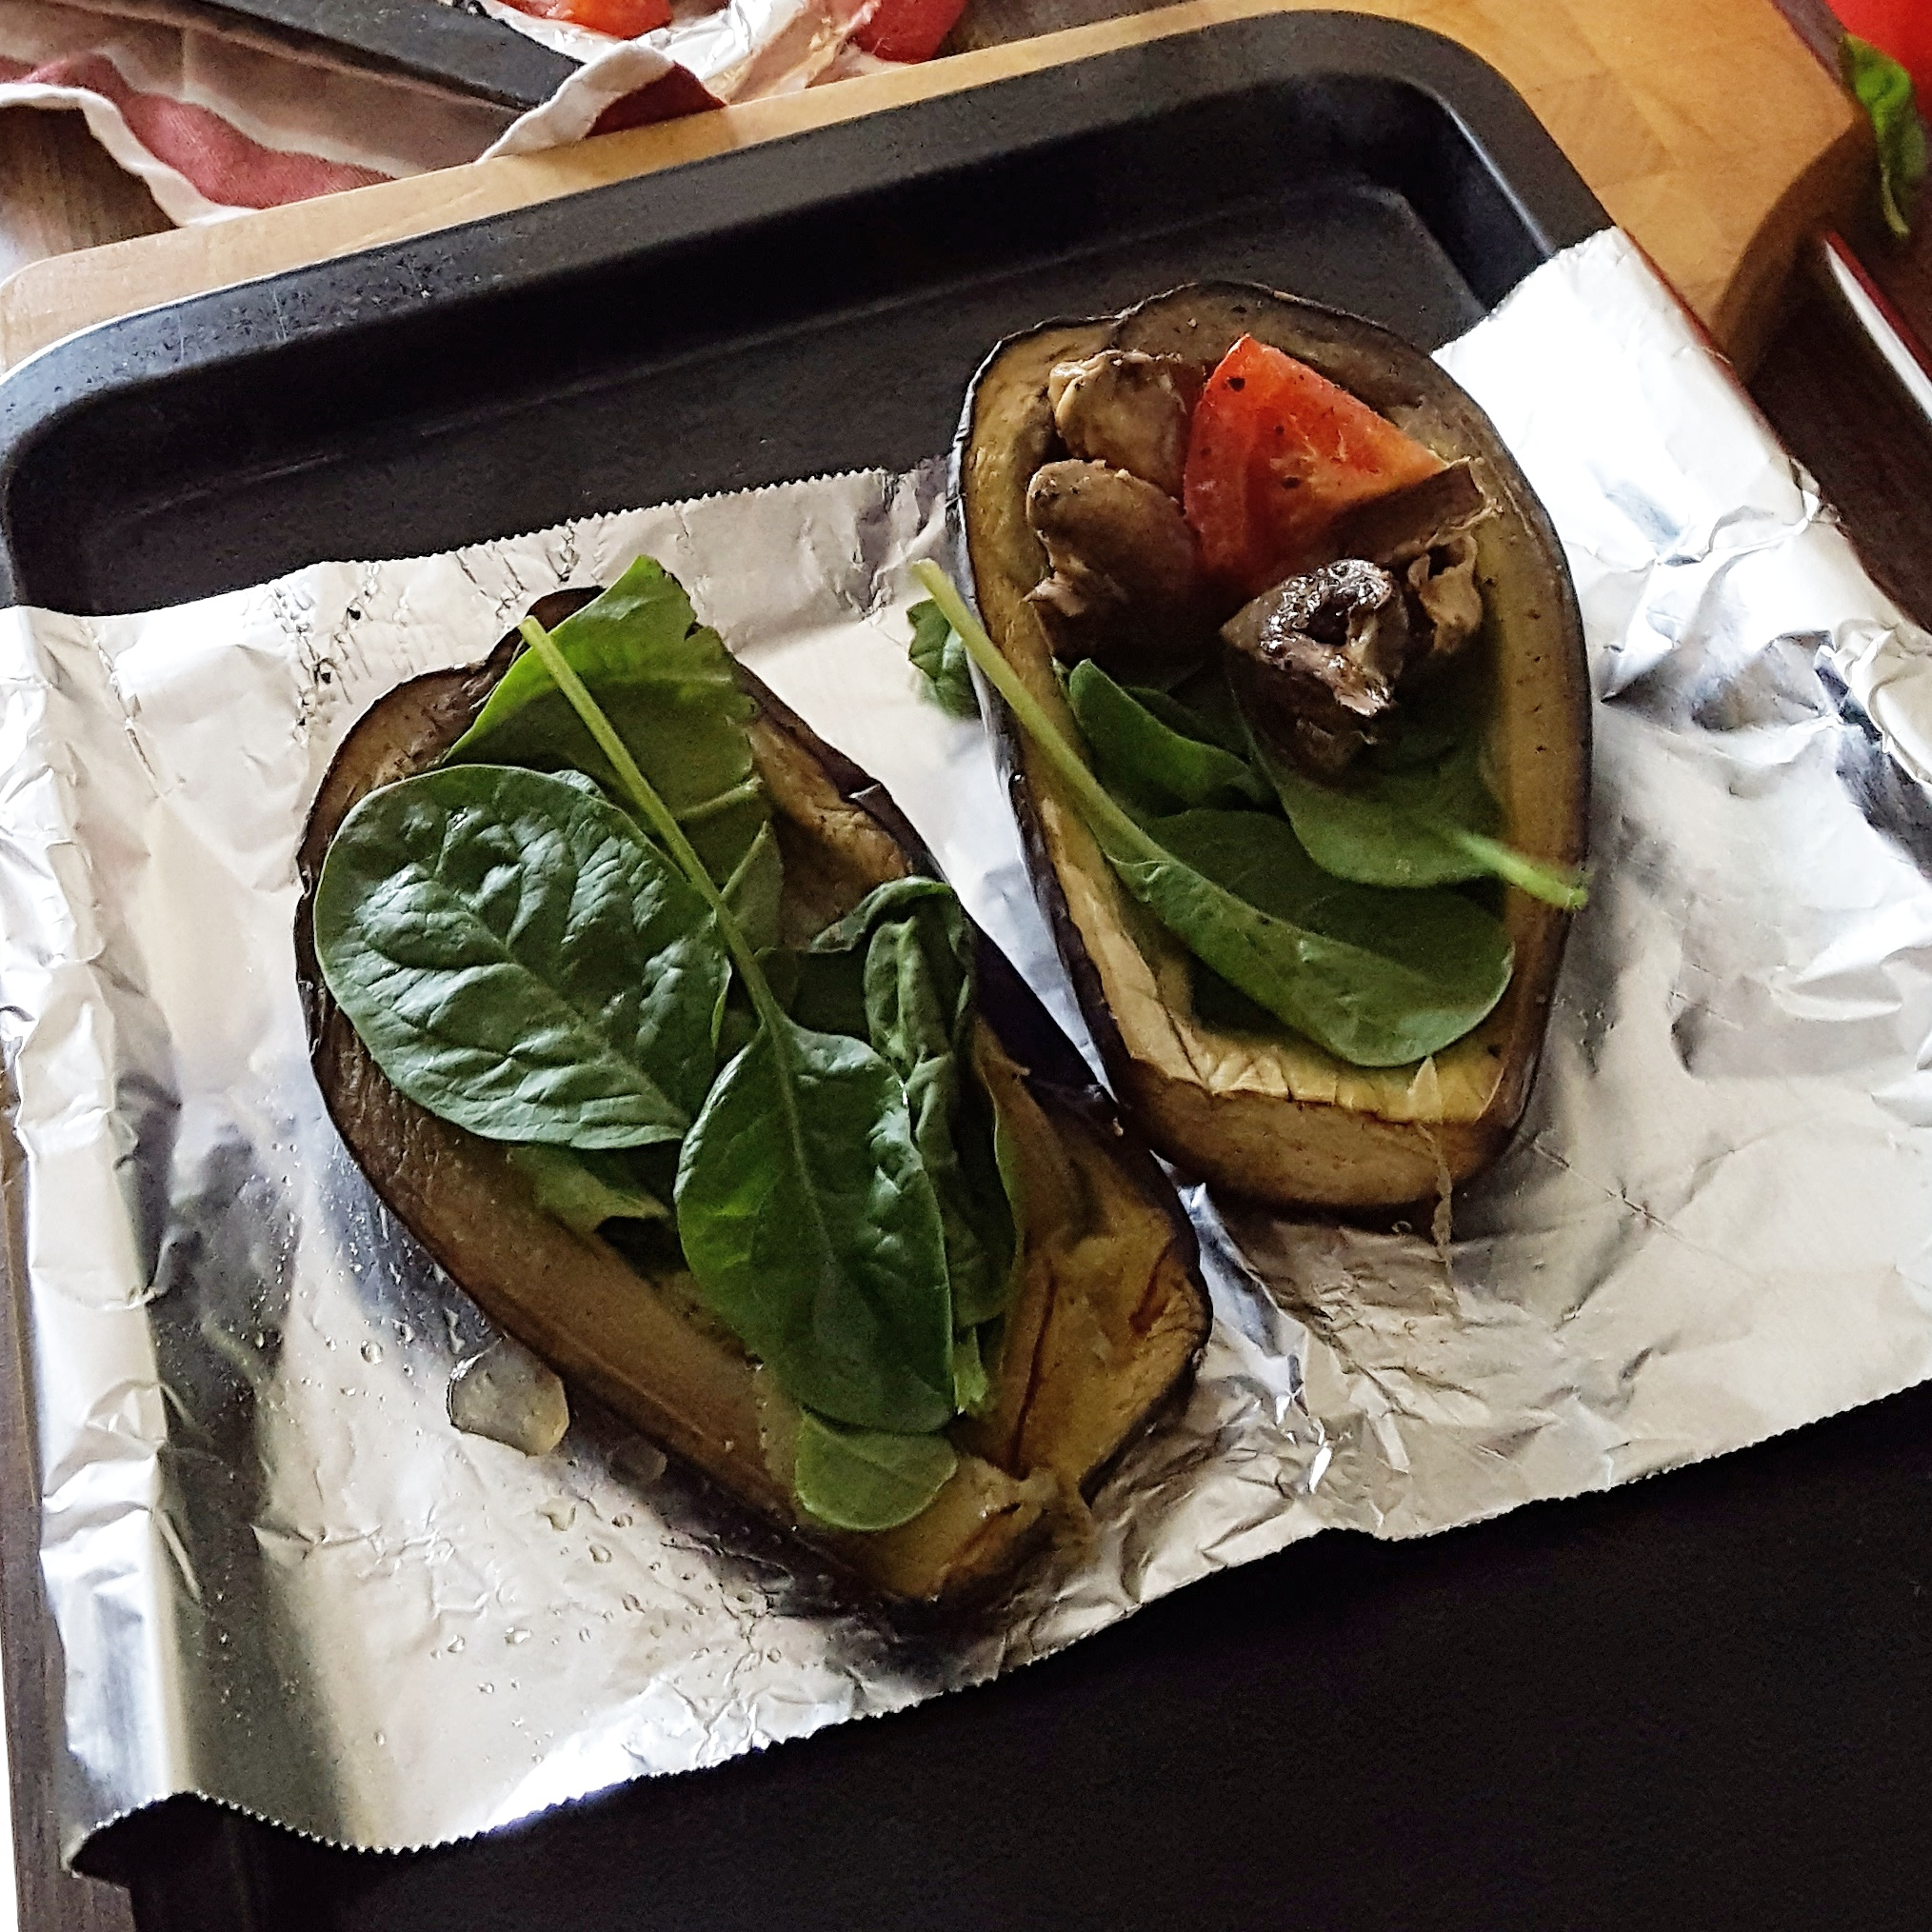 Recipe, roasted vegetable and feta aubergine boats